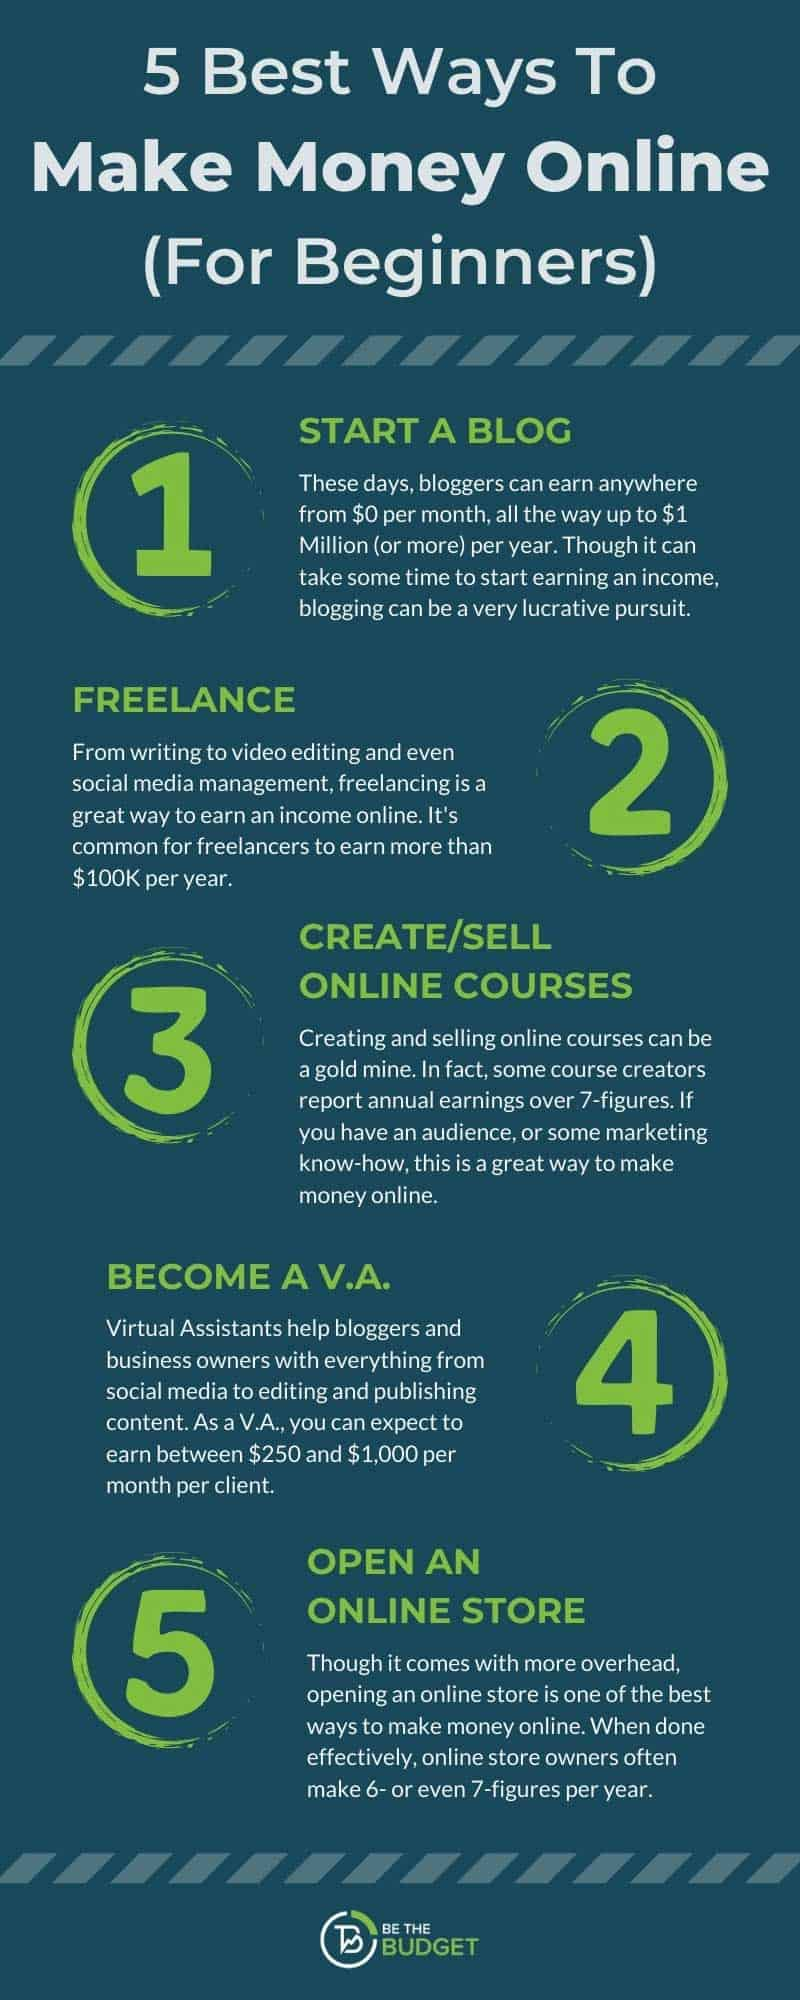 5 ways to make money online for beginners - Infographic | Be The Budget